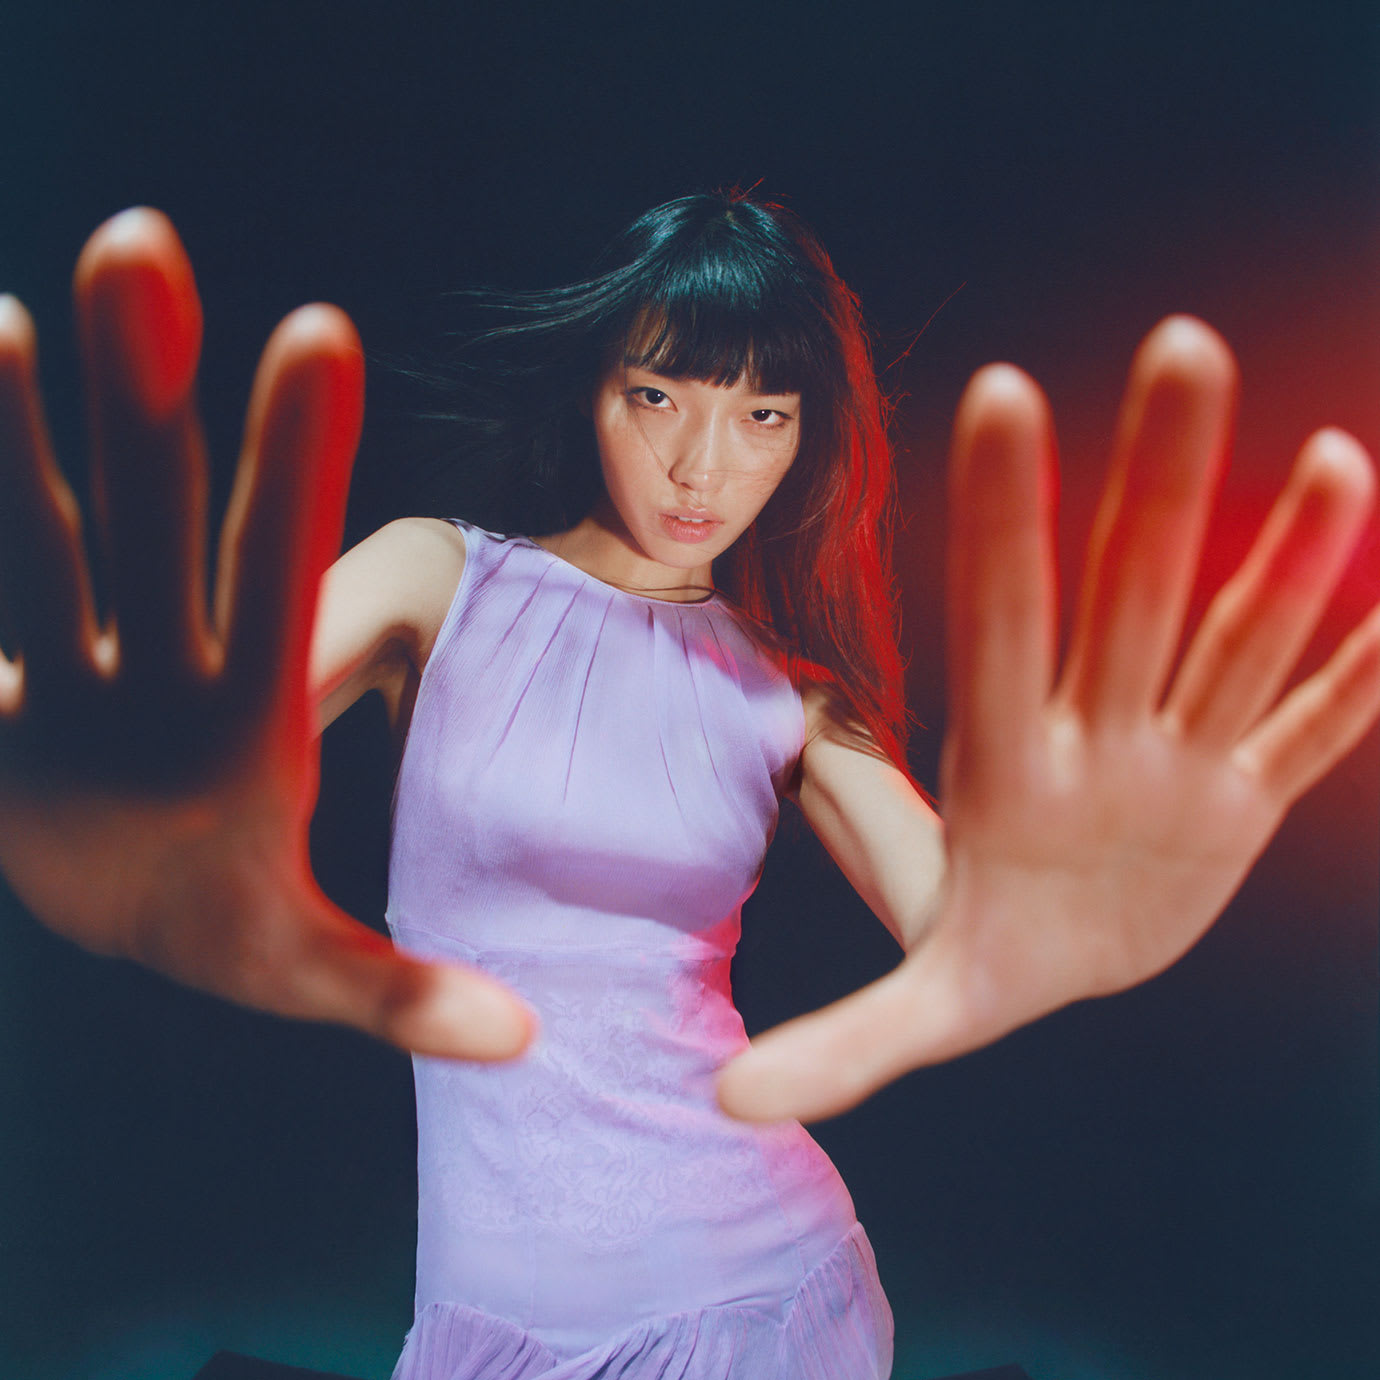 A woman with her hands out towards the camera.